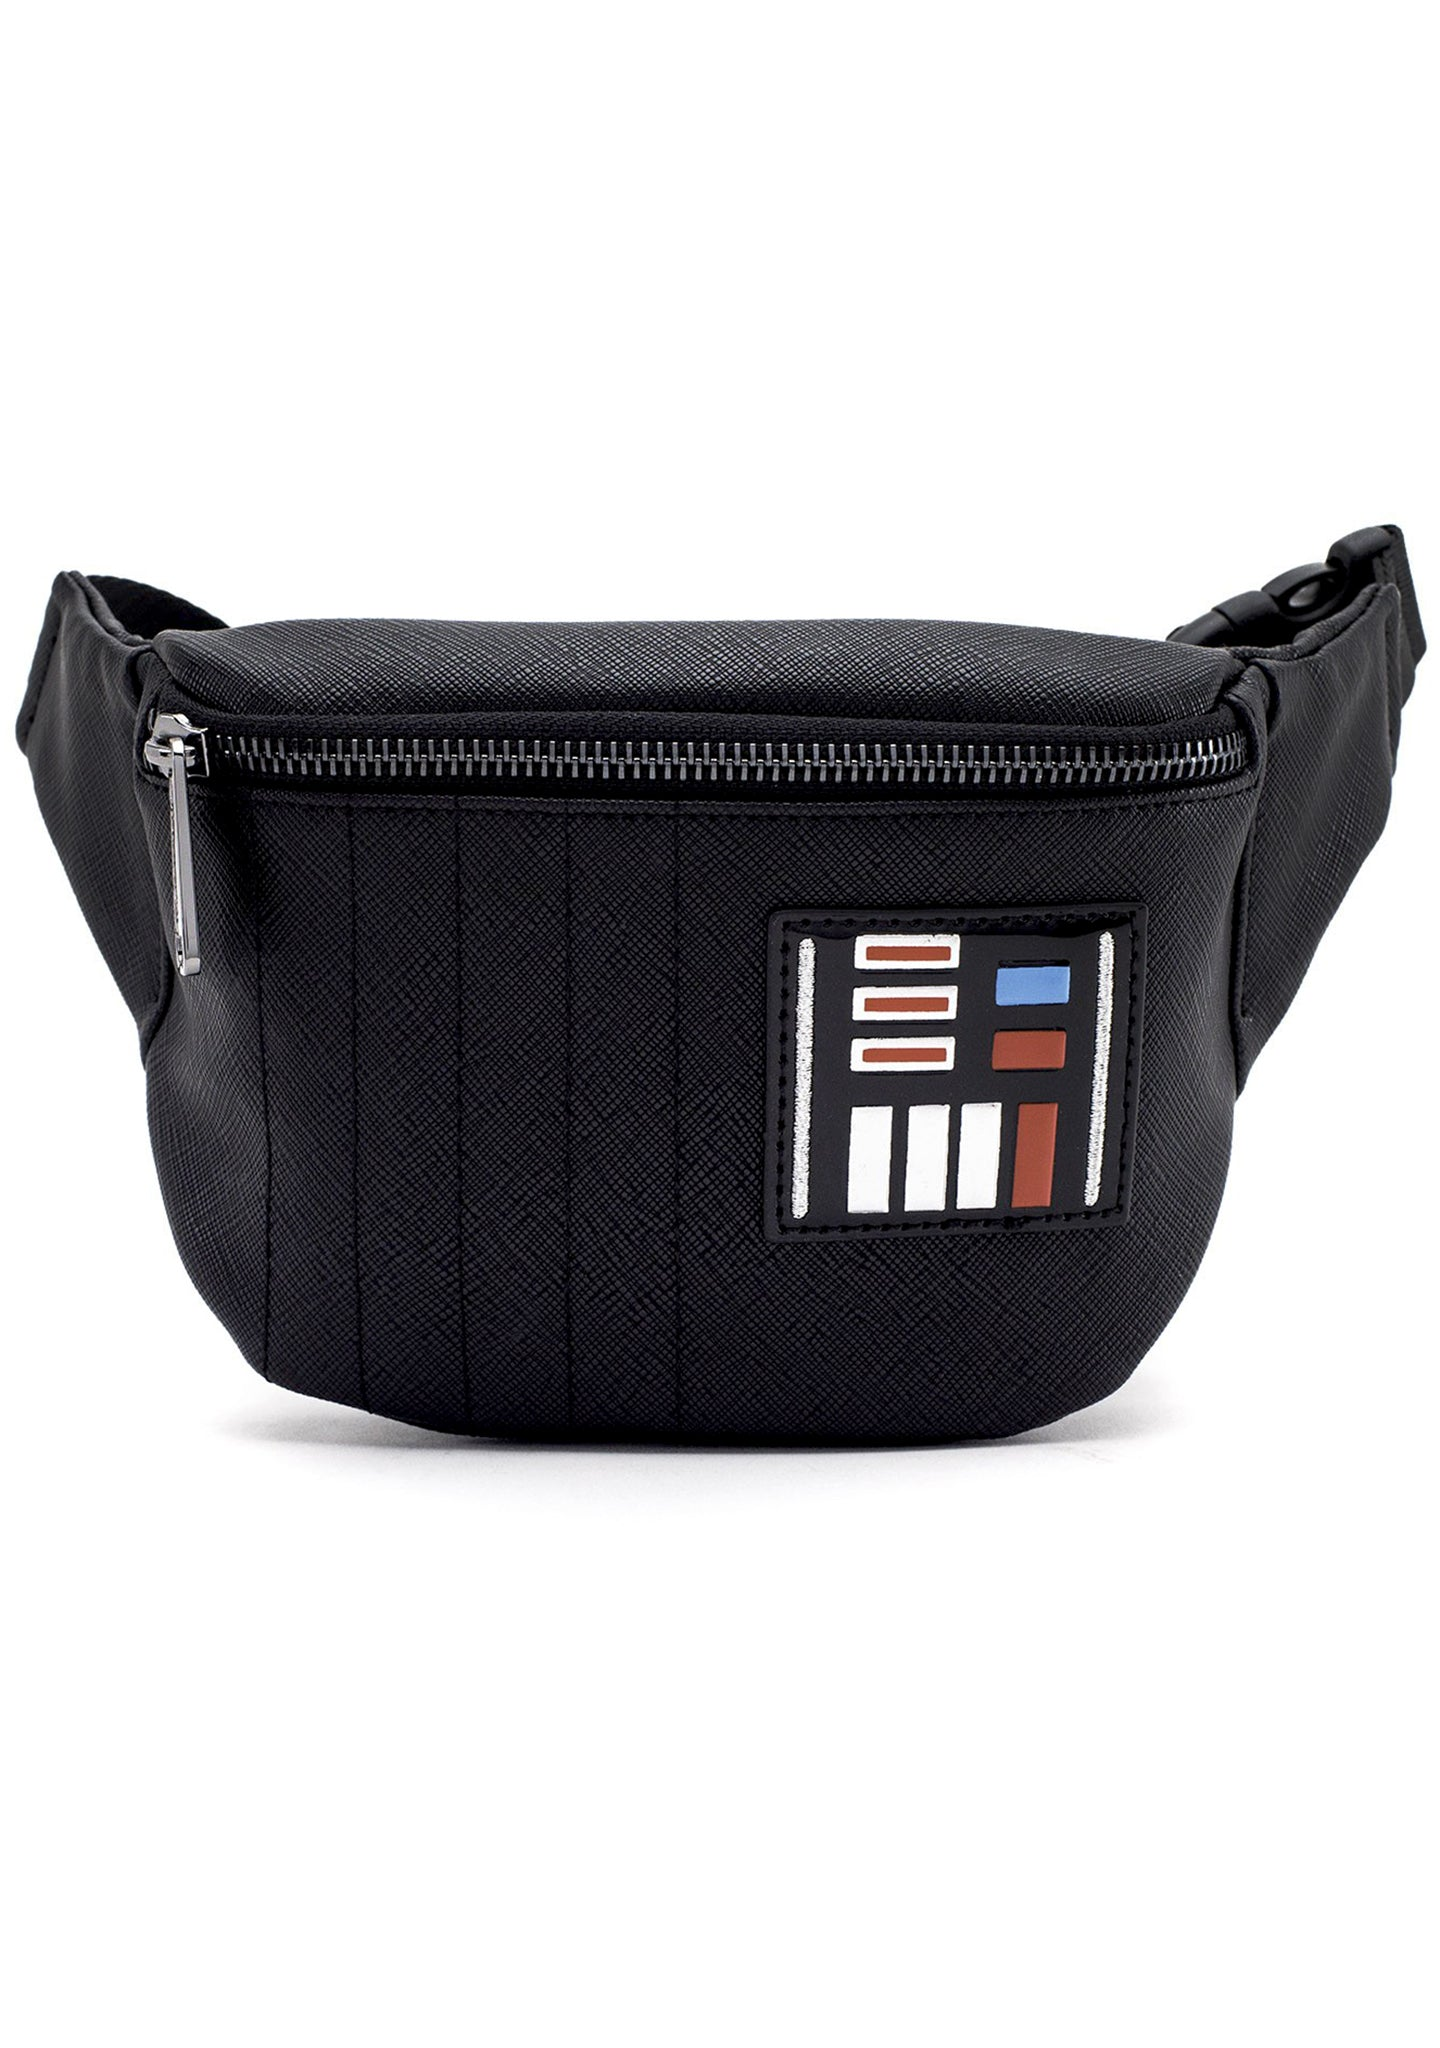 X Star Wars Darth Vader Fanny Pack